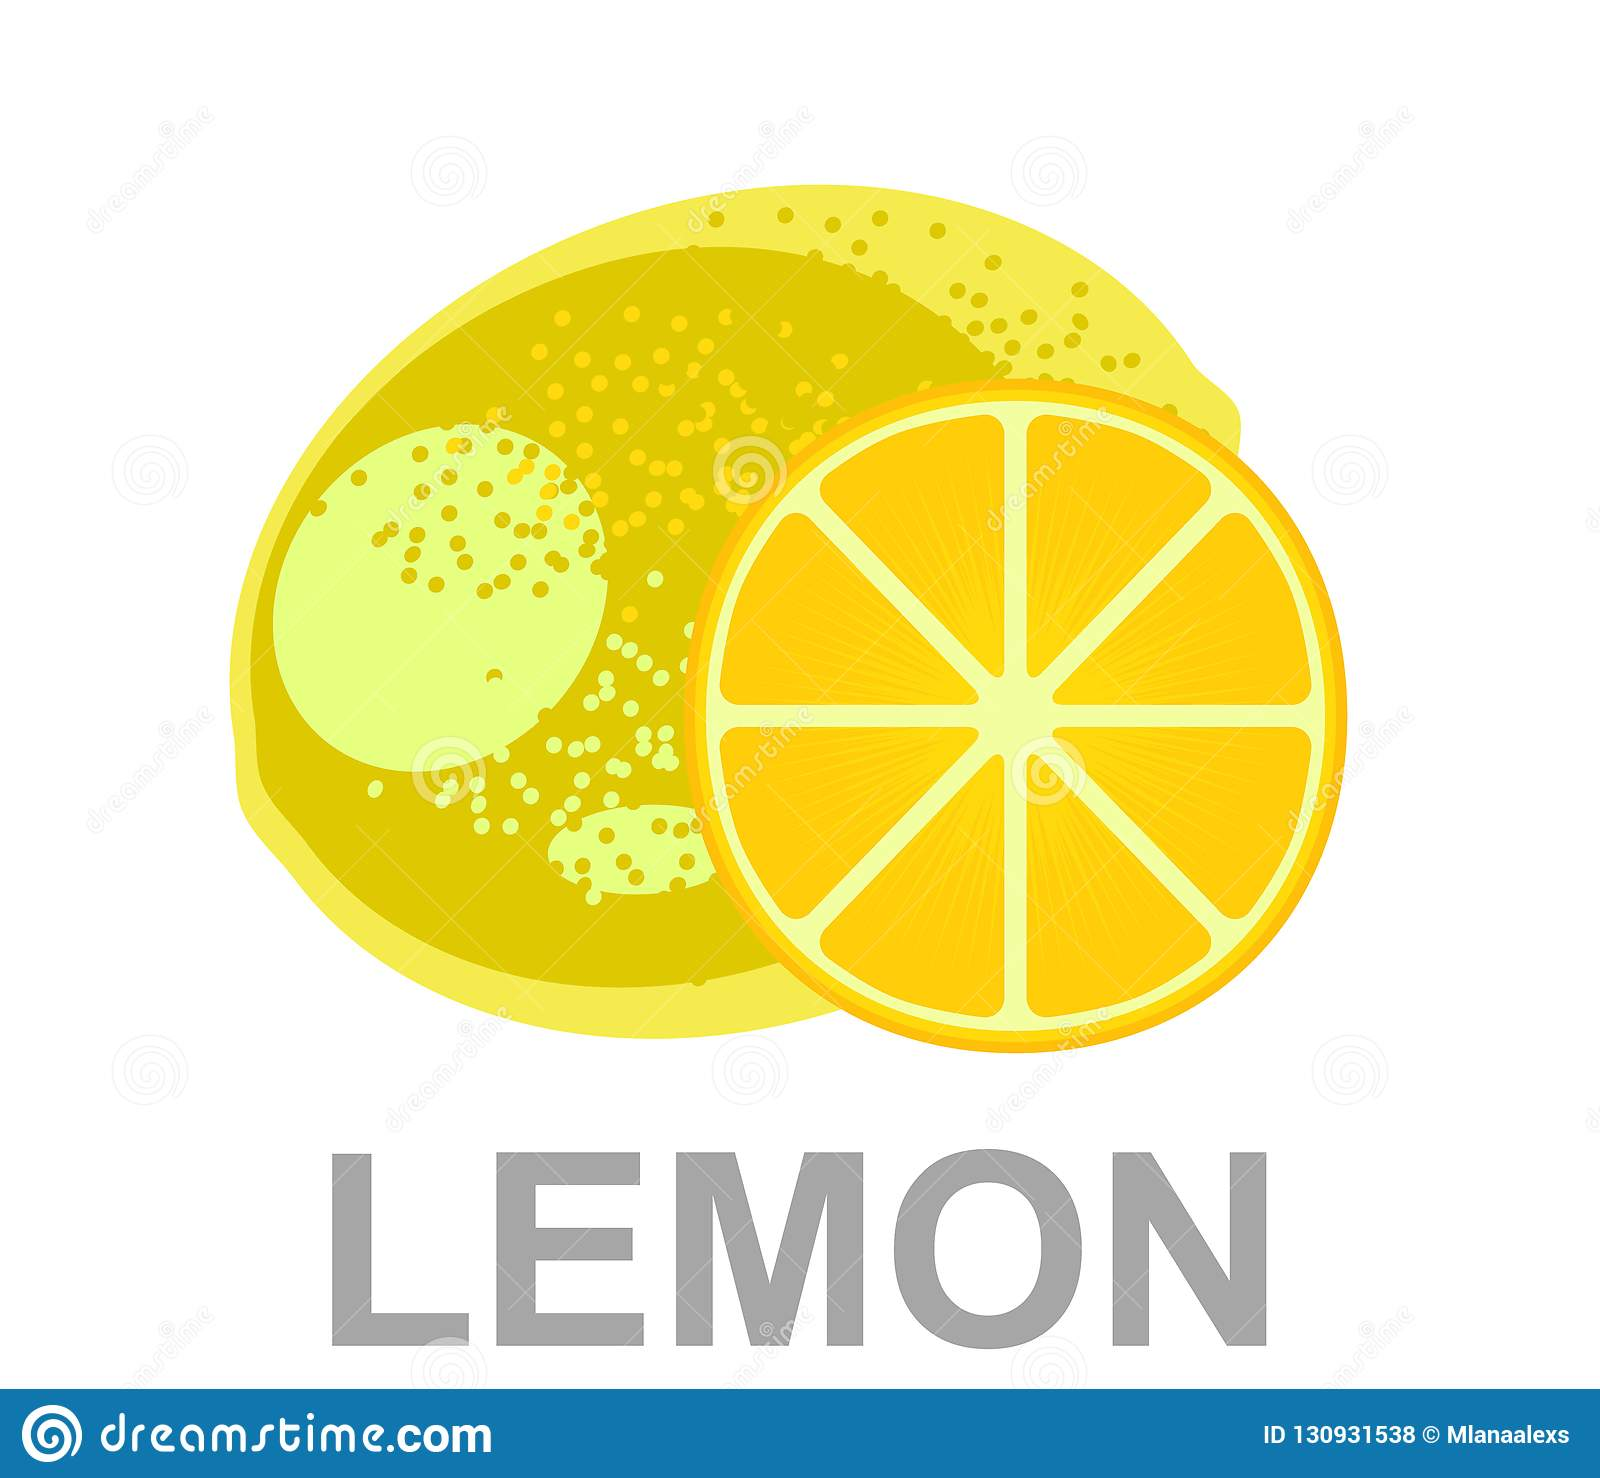 Yellow juicy lemon with a slice of lemon on the isolated white background.